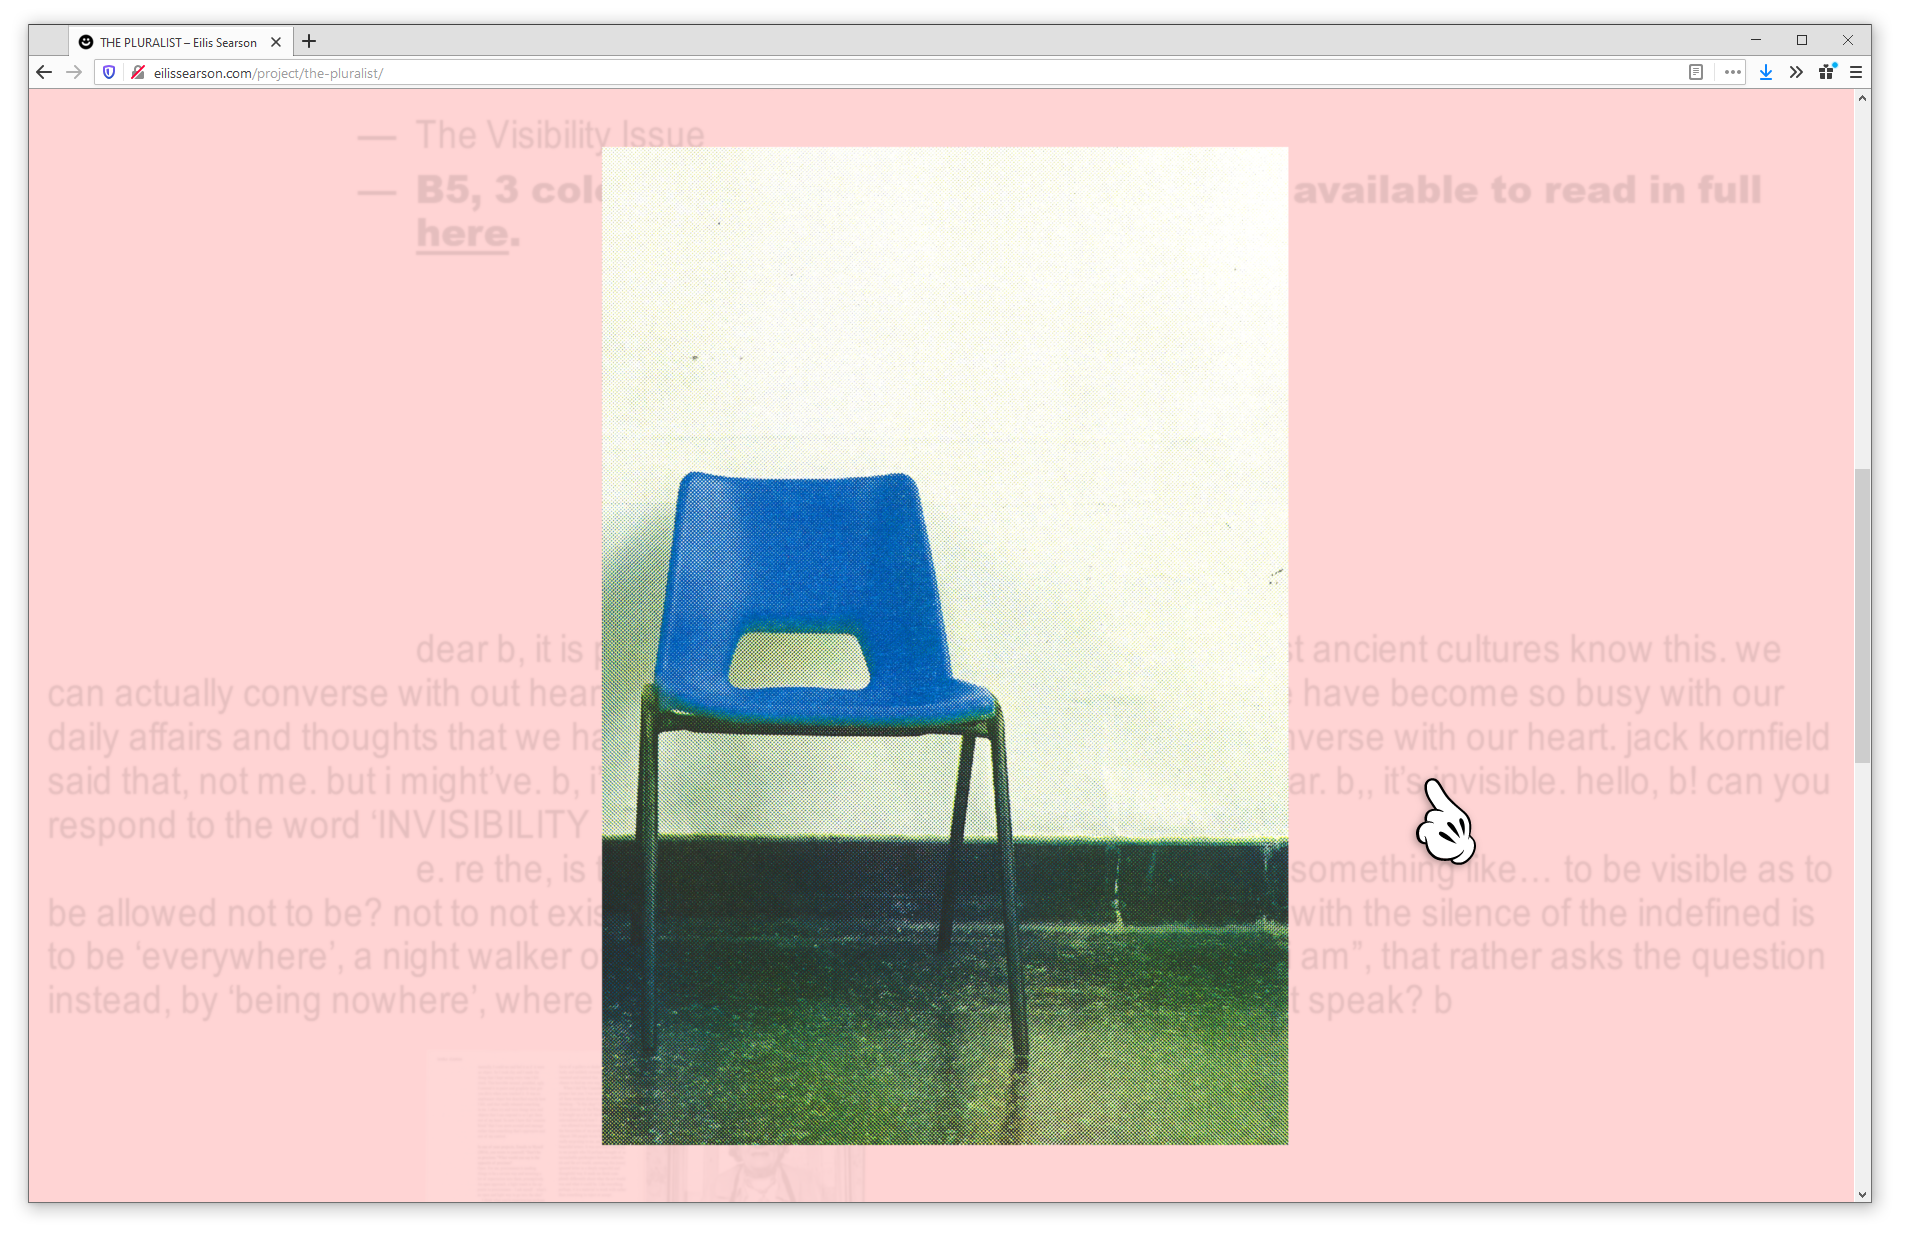 Screenshot of web browser showing a project page on eilissearson.com. A large image of a blue plastic chair on a shiny green floor appears on a light pink background. The cursor looks like  Mickey Mouse's hand.